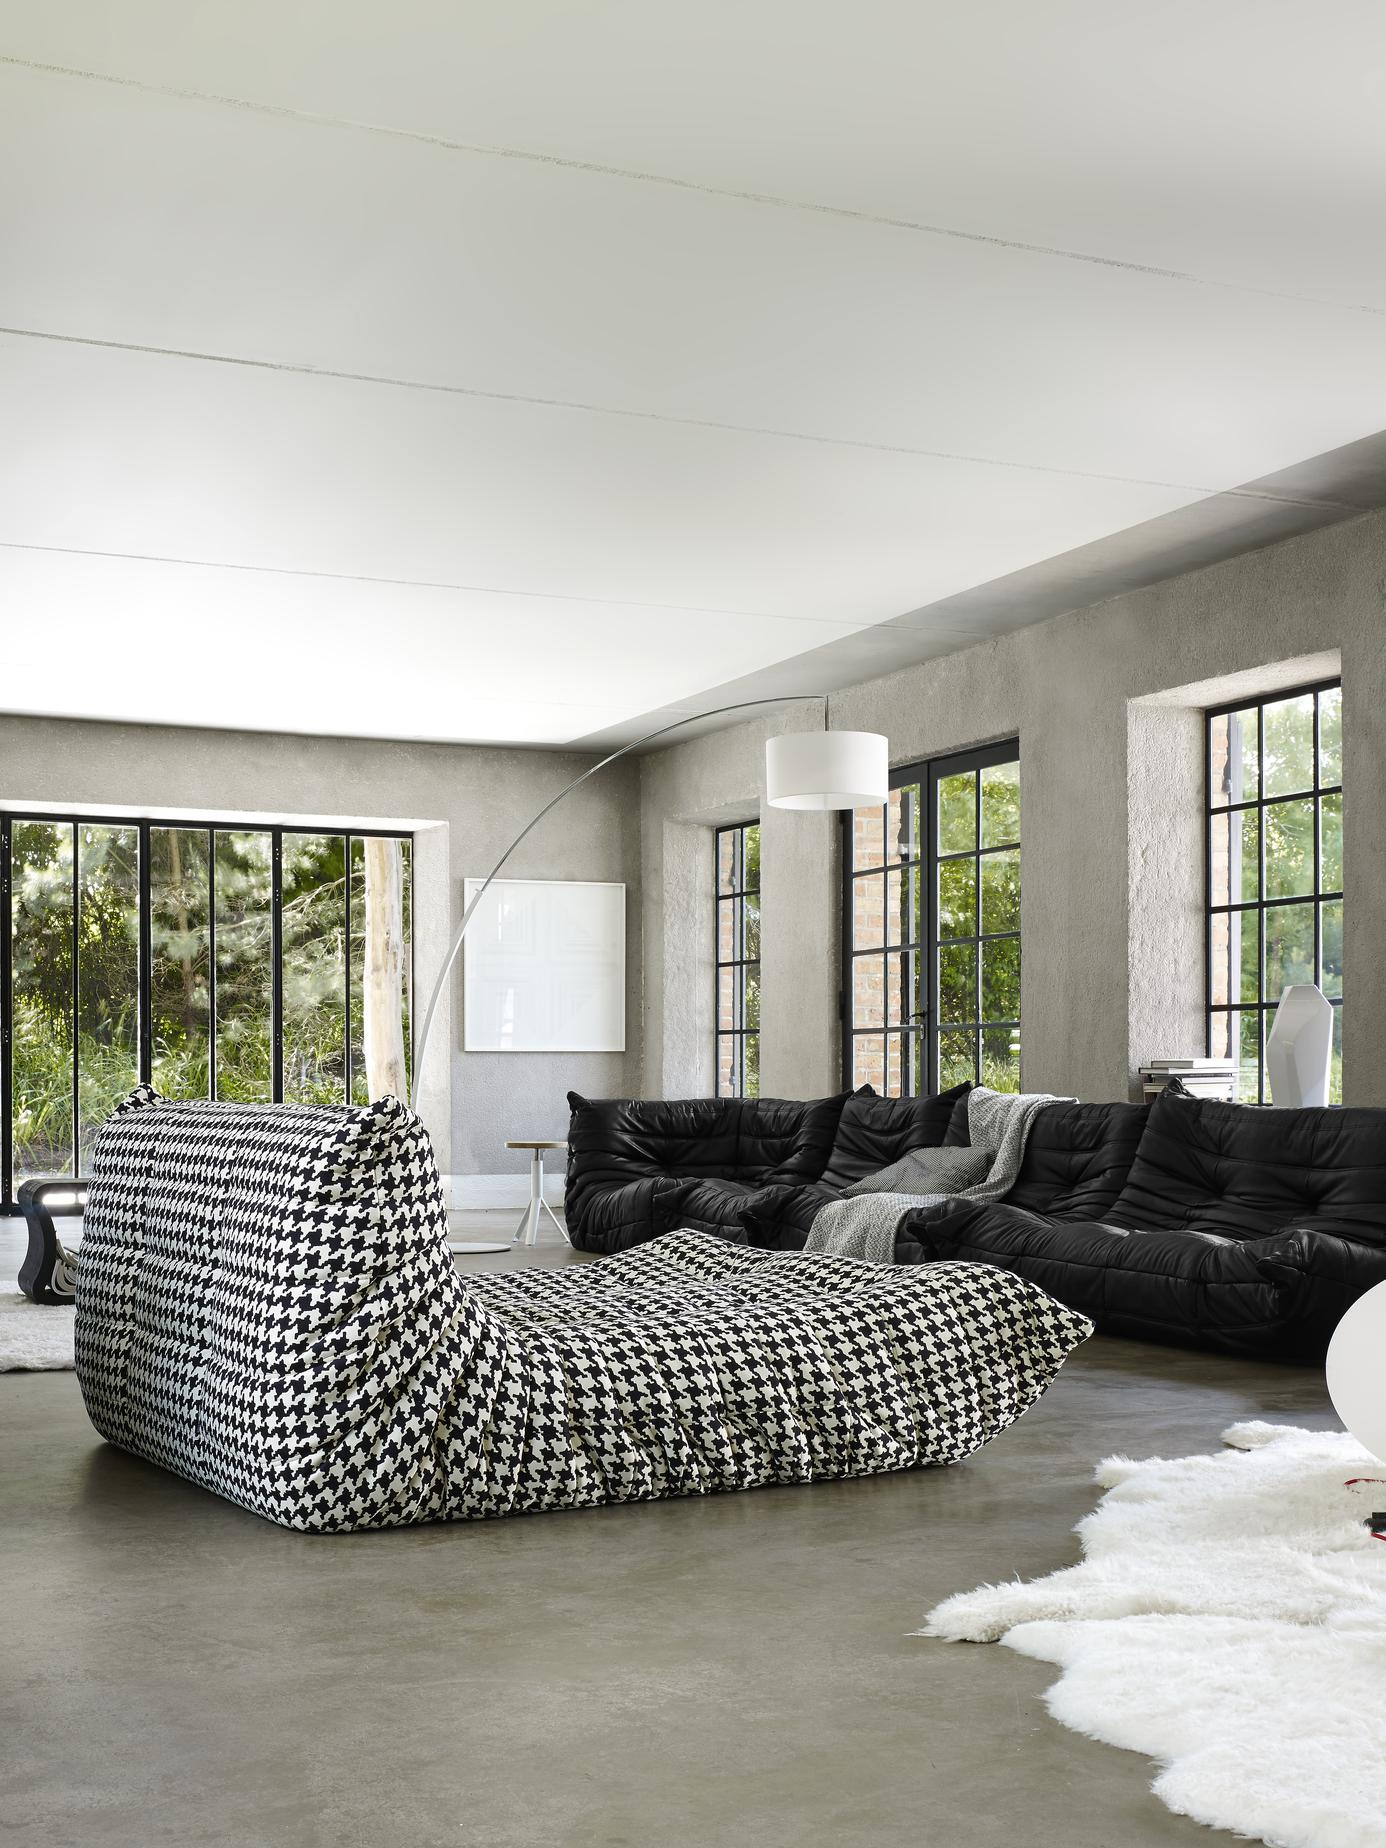 togo canap s du designer michel ducaroy ligne roset site officiel. Black Bedroom Furniture Sets. Home Design Ideas